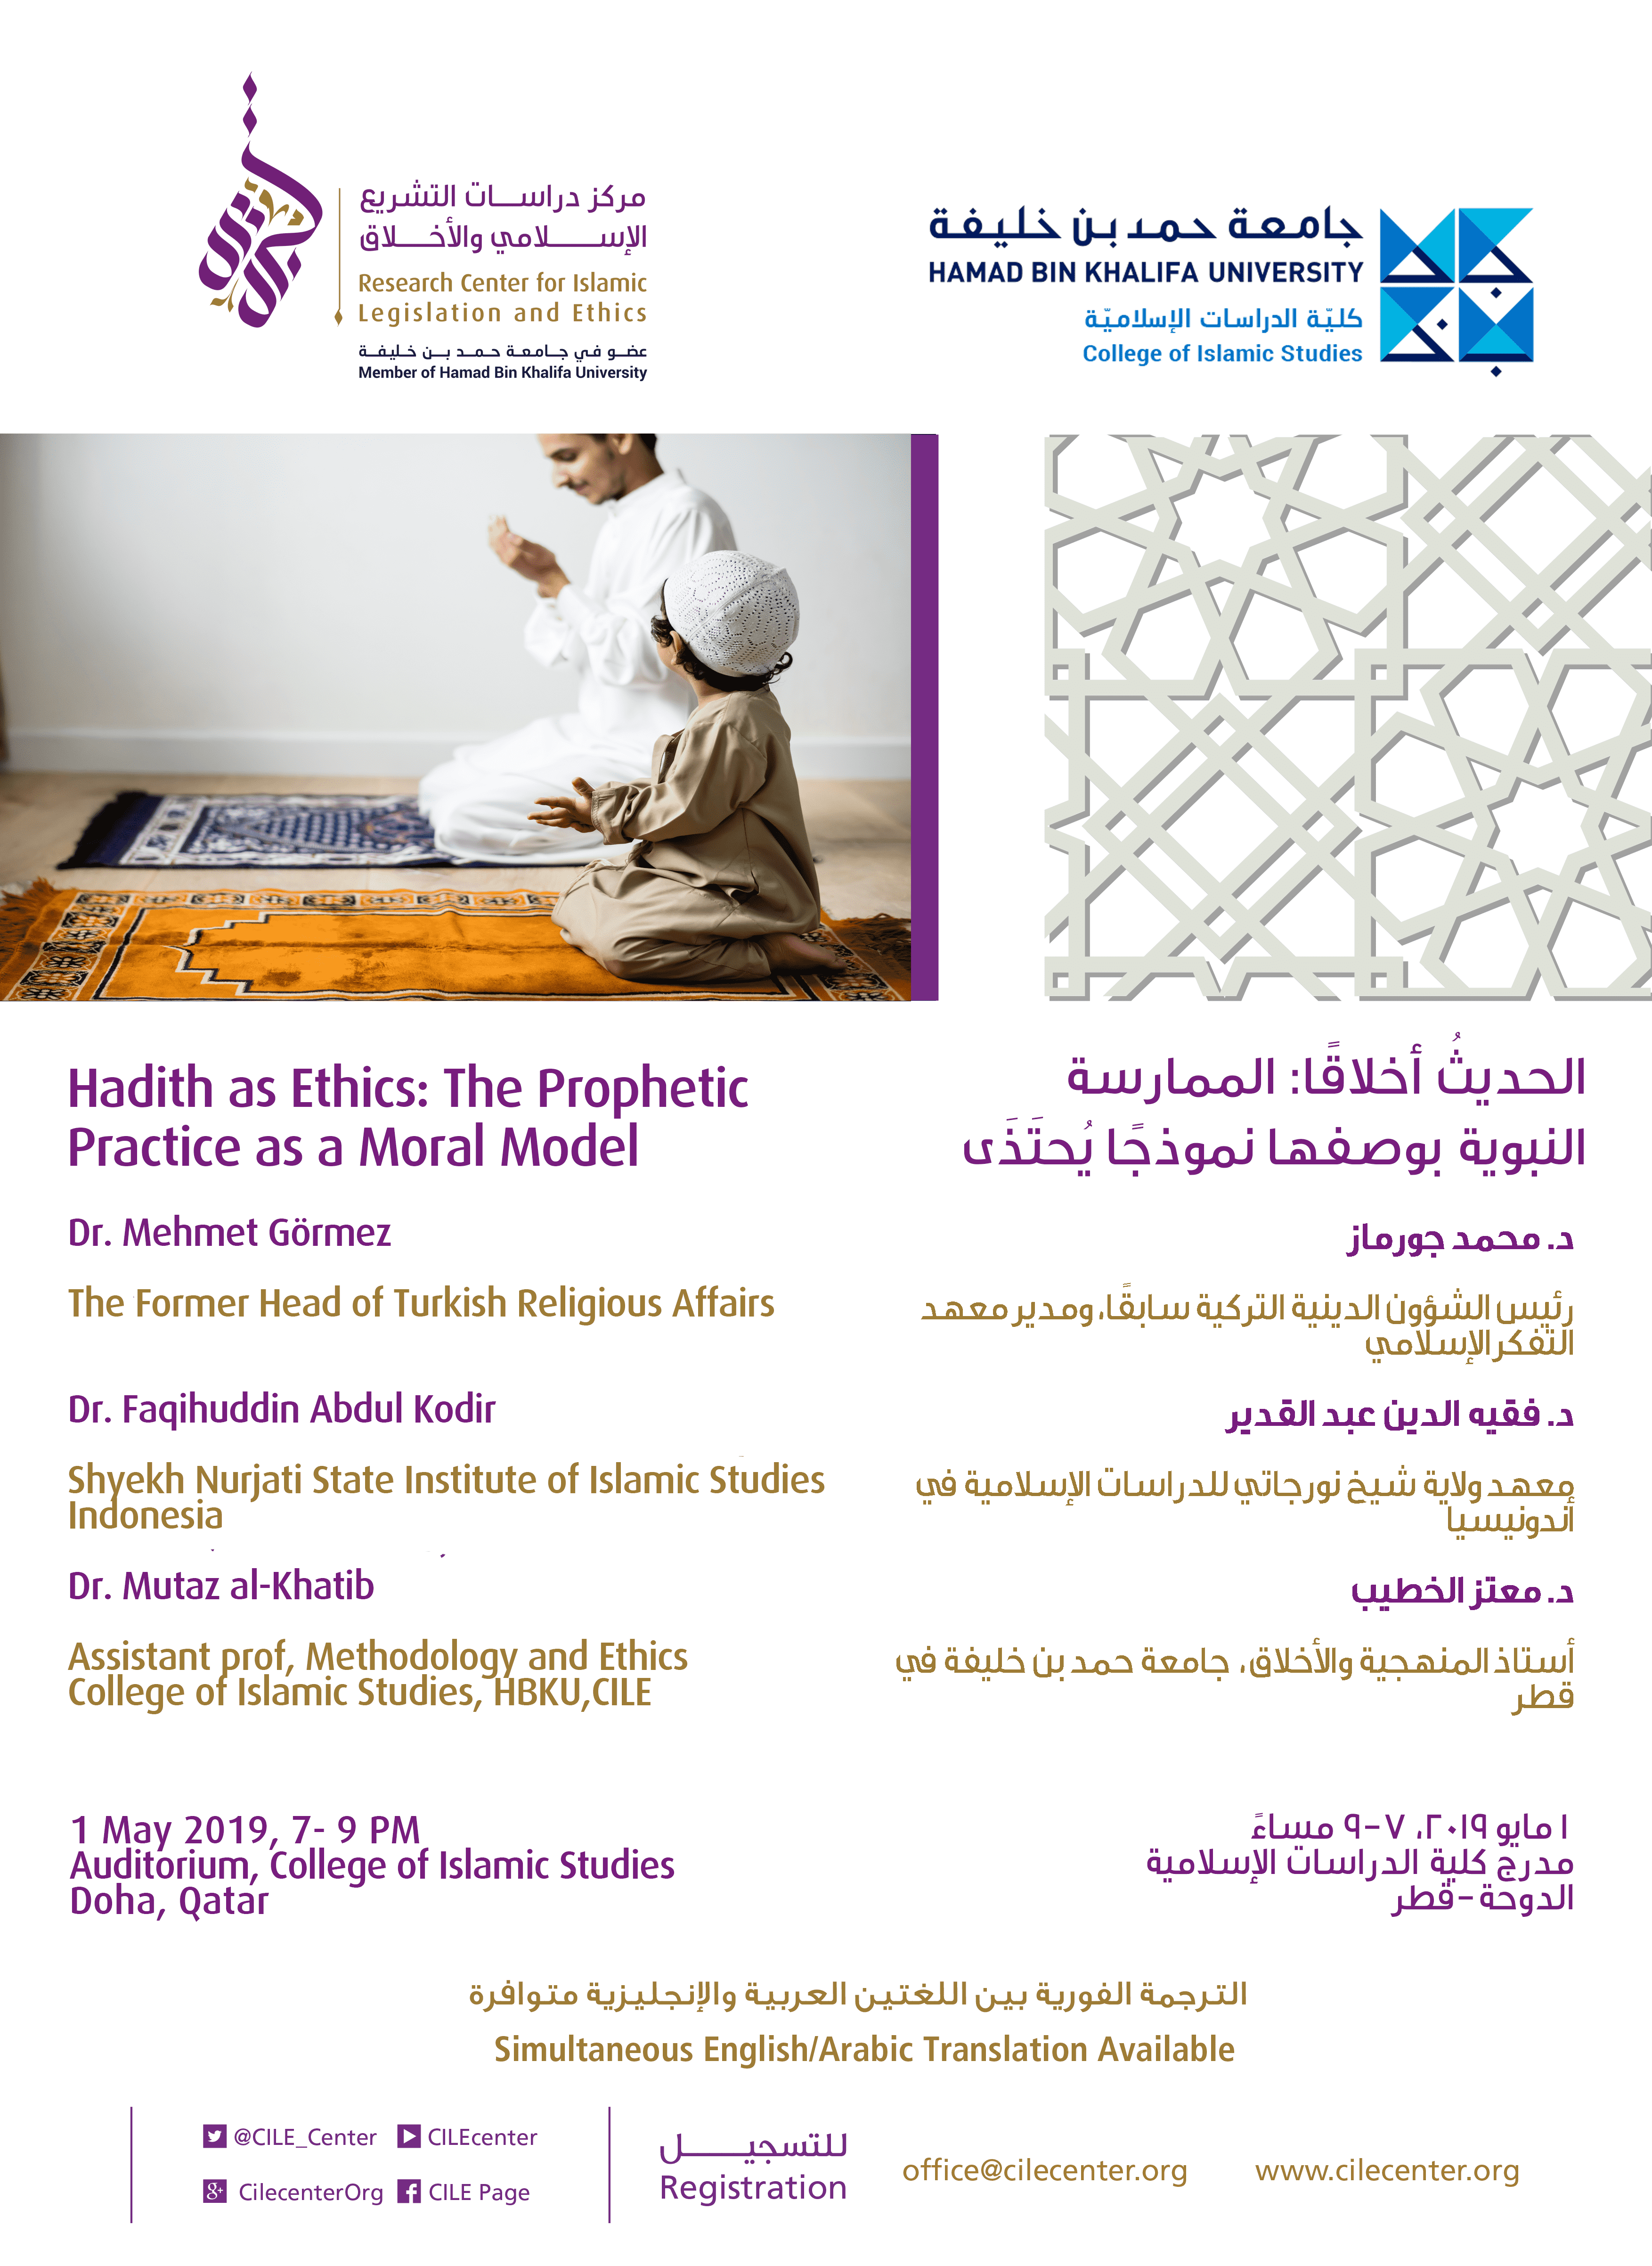 Hadith as Ethics: The Prophetic Practice as a Moral Model